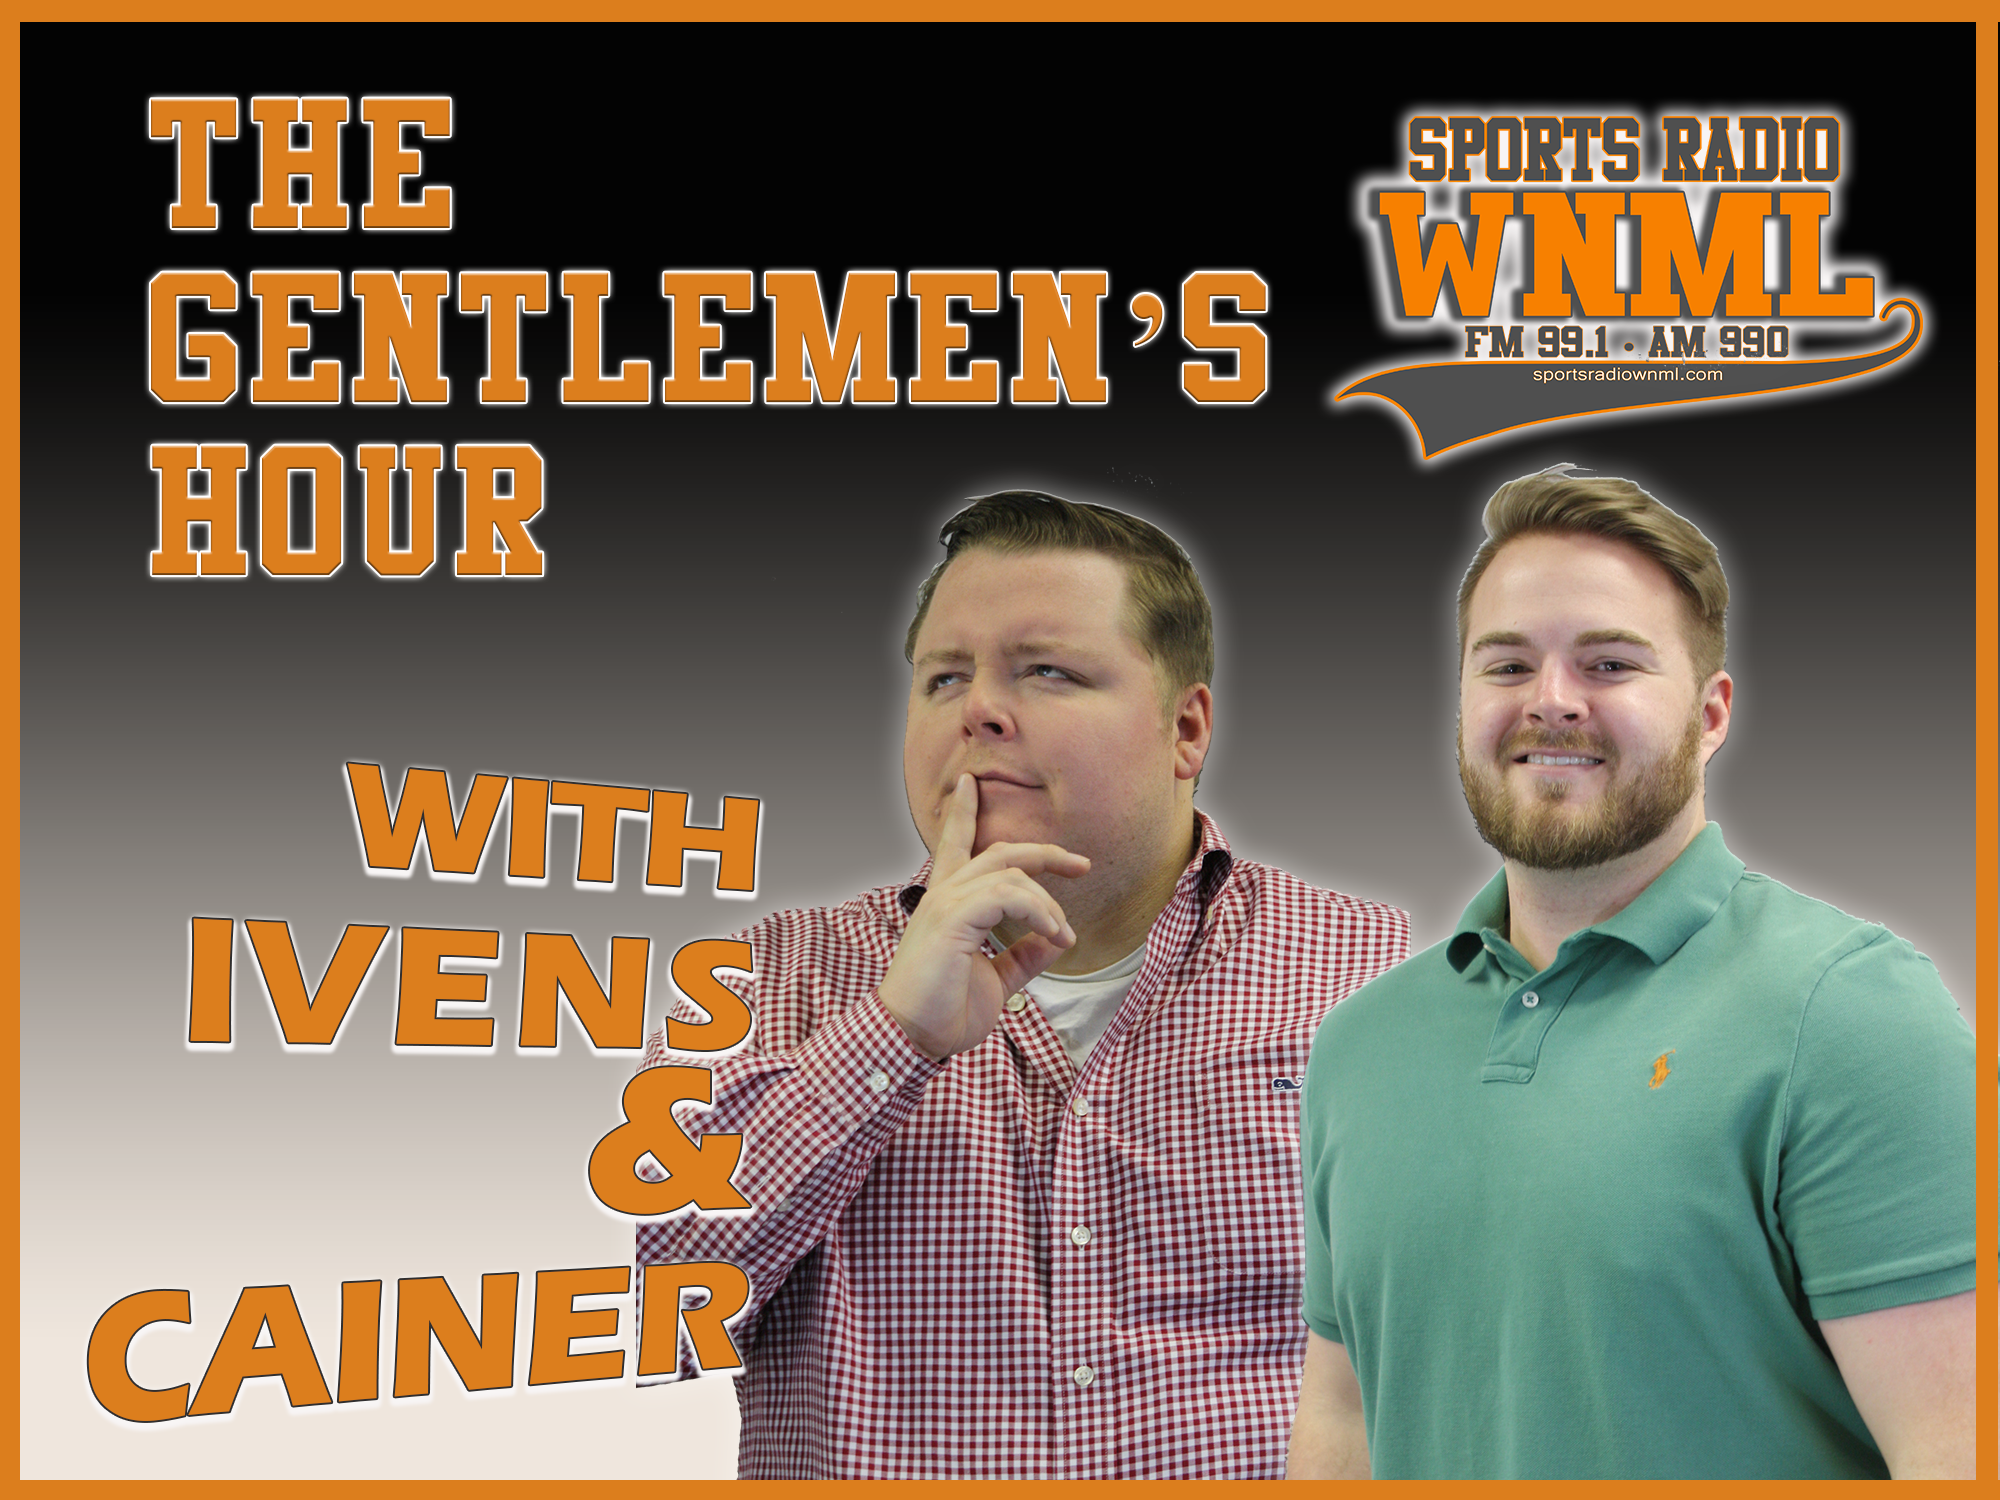 The Gentlemen's Hour Podcast: Episode 35 (6.26.19)